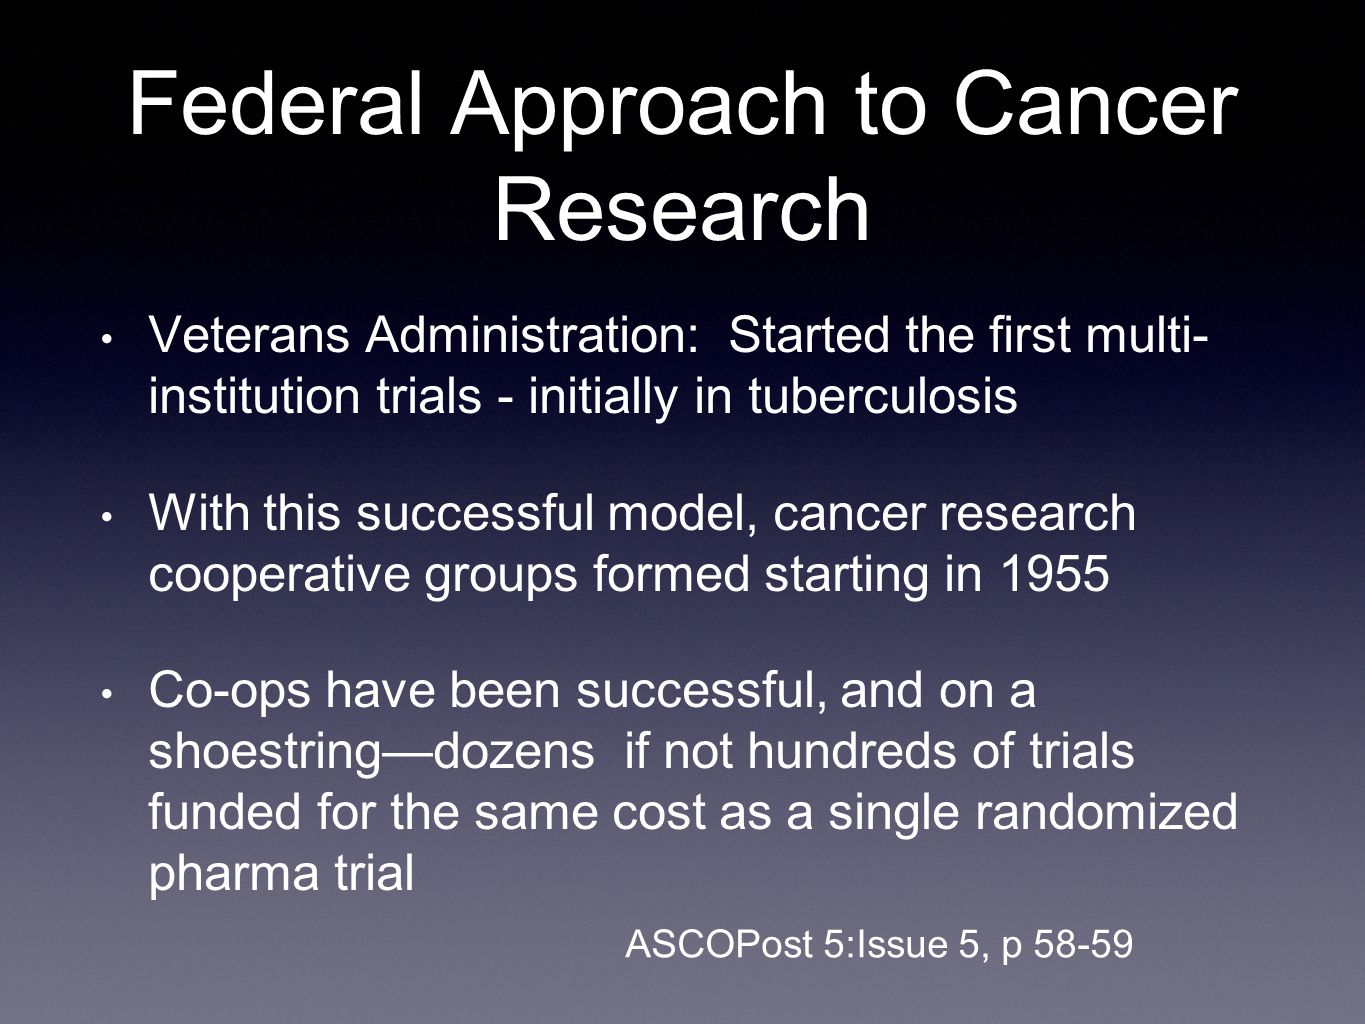 Federal Approach to Cancer Research Veterans Administration: Started the first multi- institution trials - initially in tuberculosis With this successful model, cancer research cooperative groups formed starting in 1955 Co-ops have been successful, and on a shoestring—dozens if not hundreds of trials funded for the same cost as a single randomized pharma trial ASCOPost 5:Issue 5, p 58-59